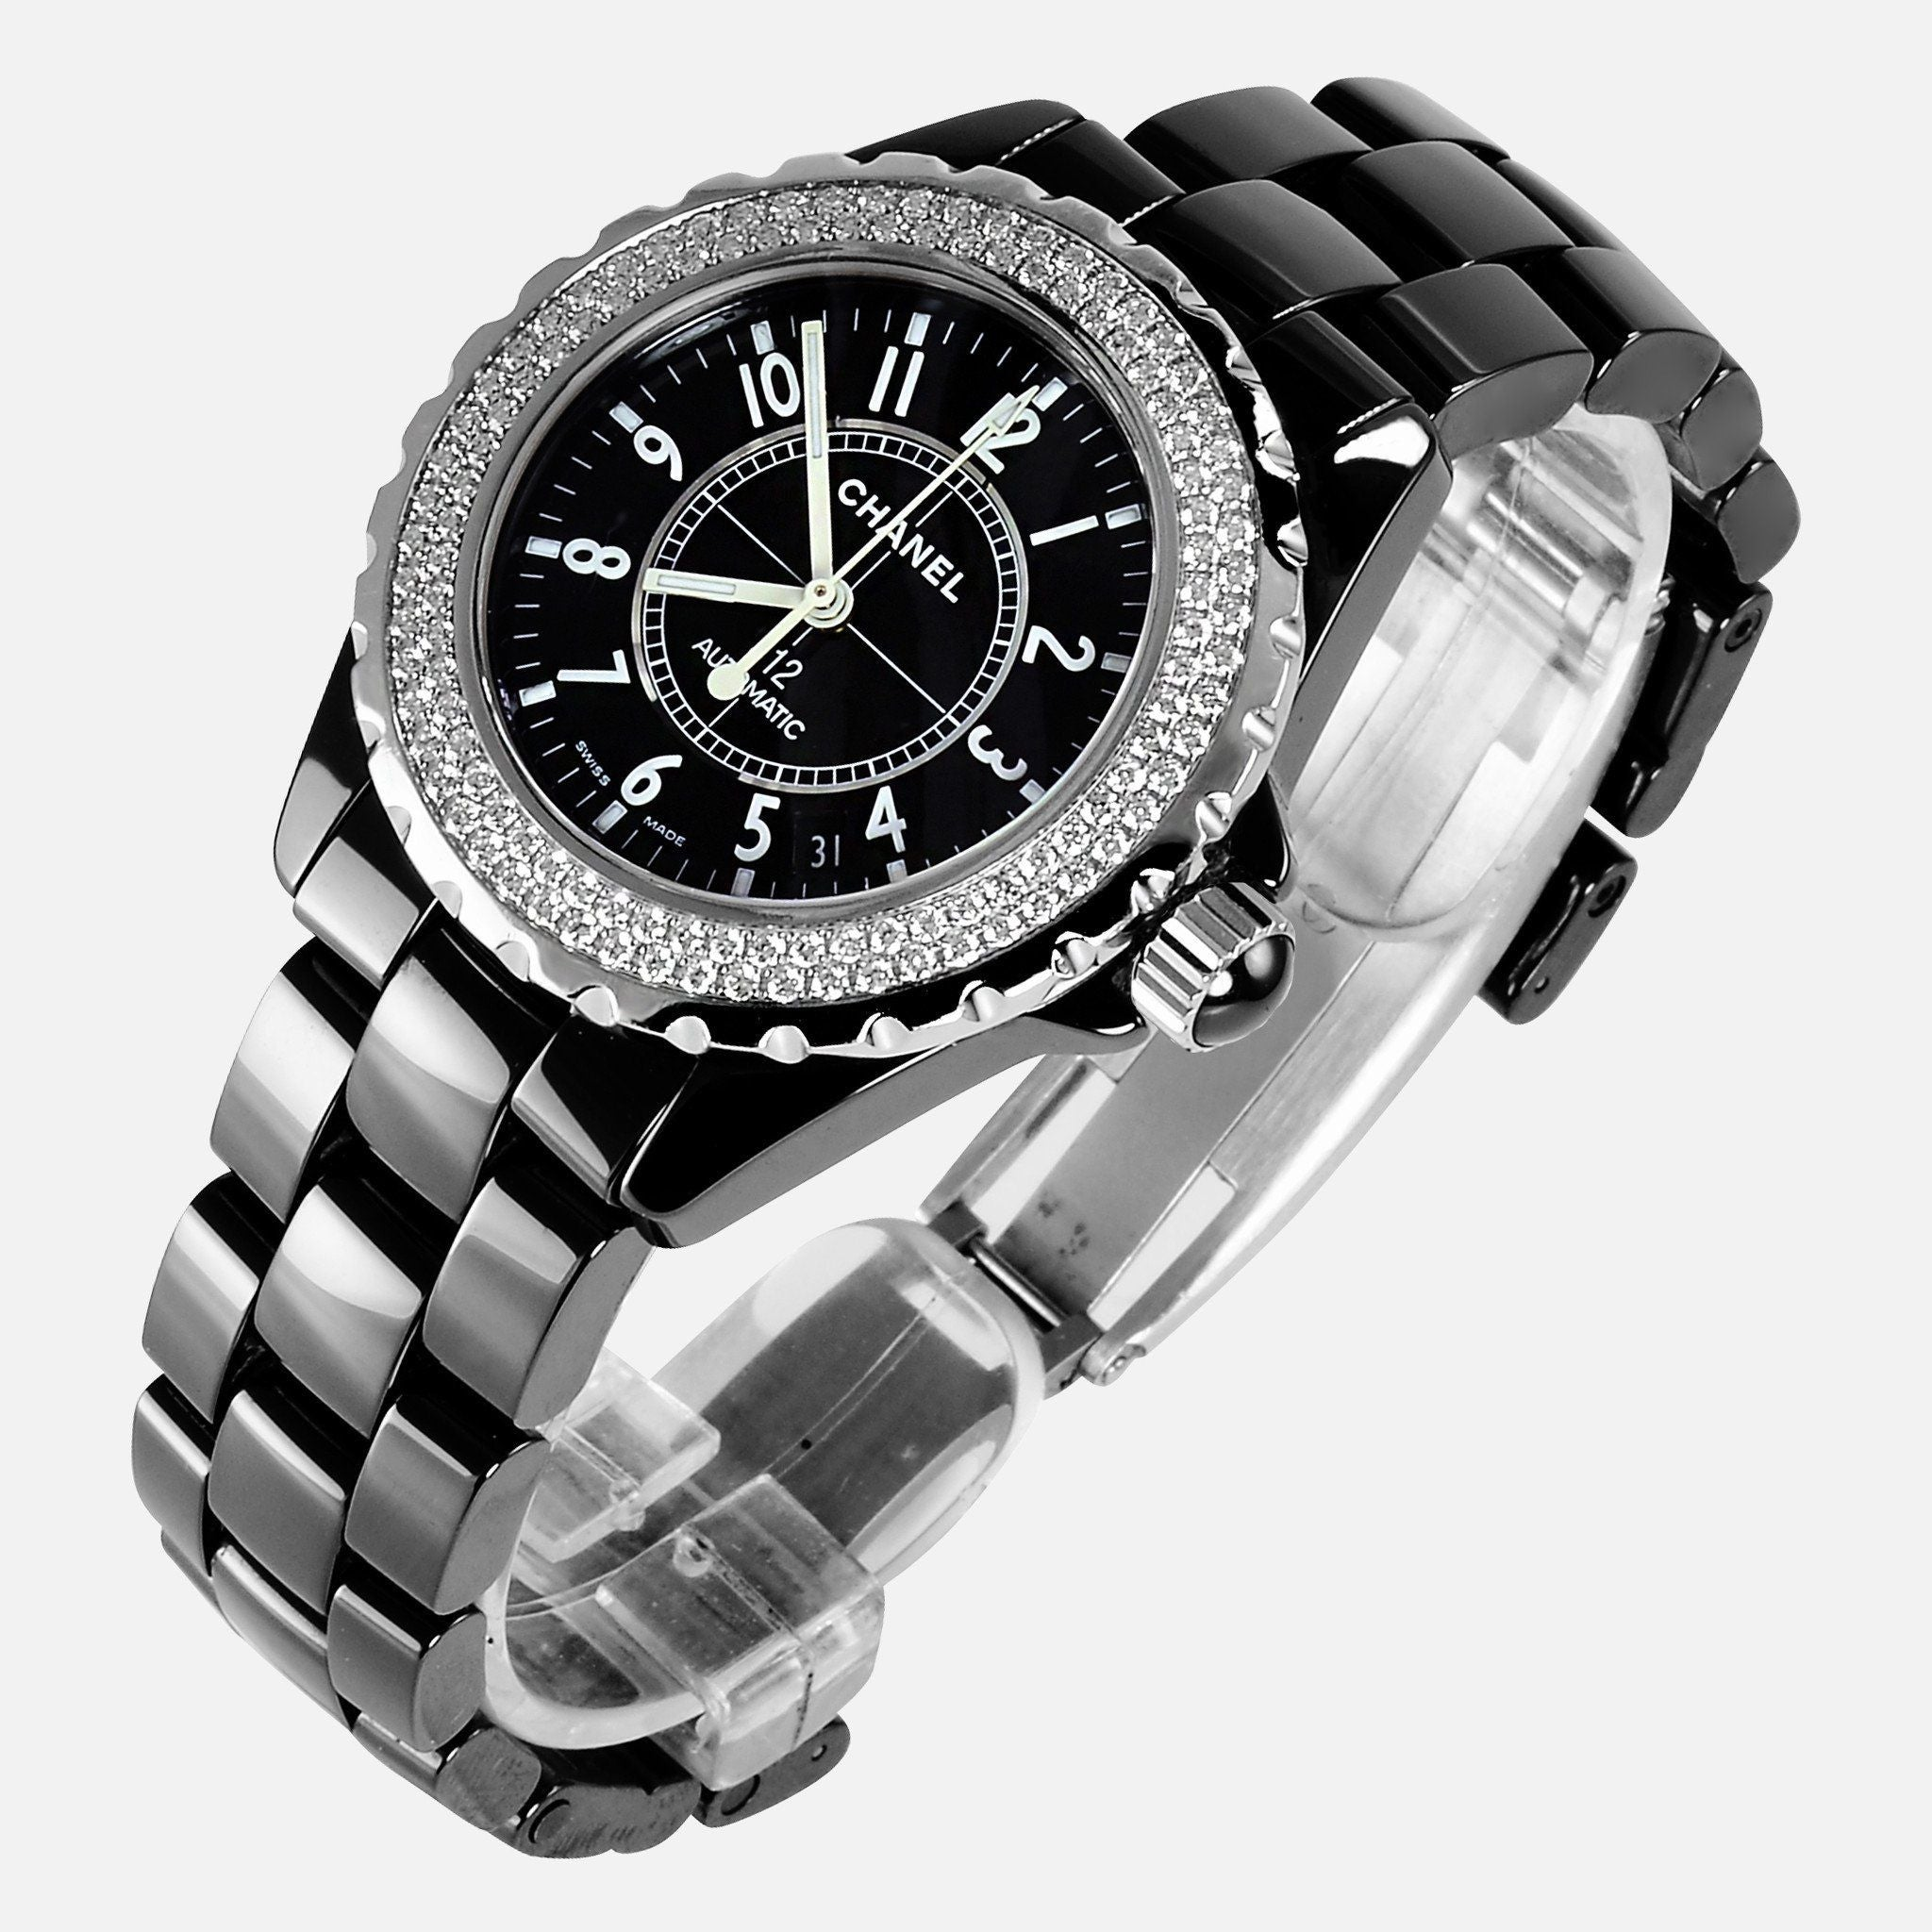 Chanel J12 Black Ceramic 38mm Unisex Automatic Diamond Watch